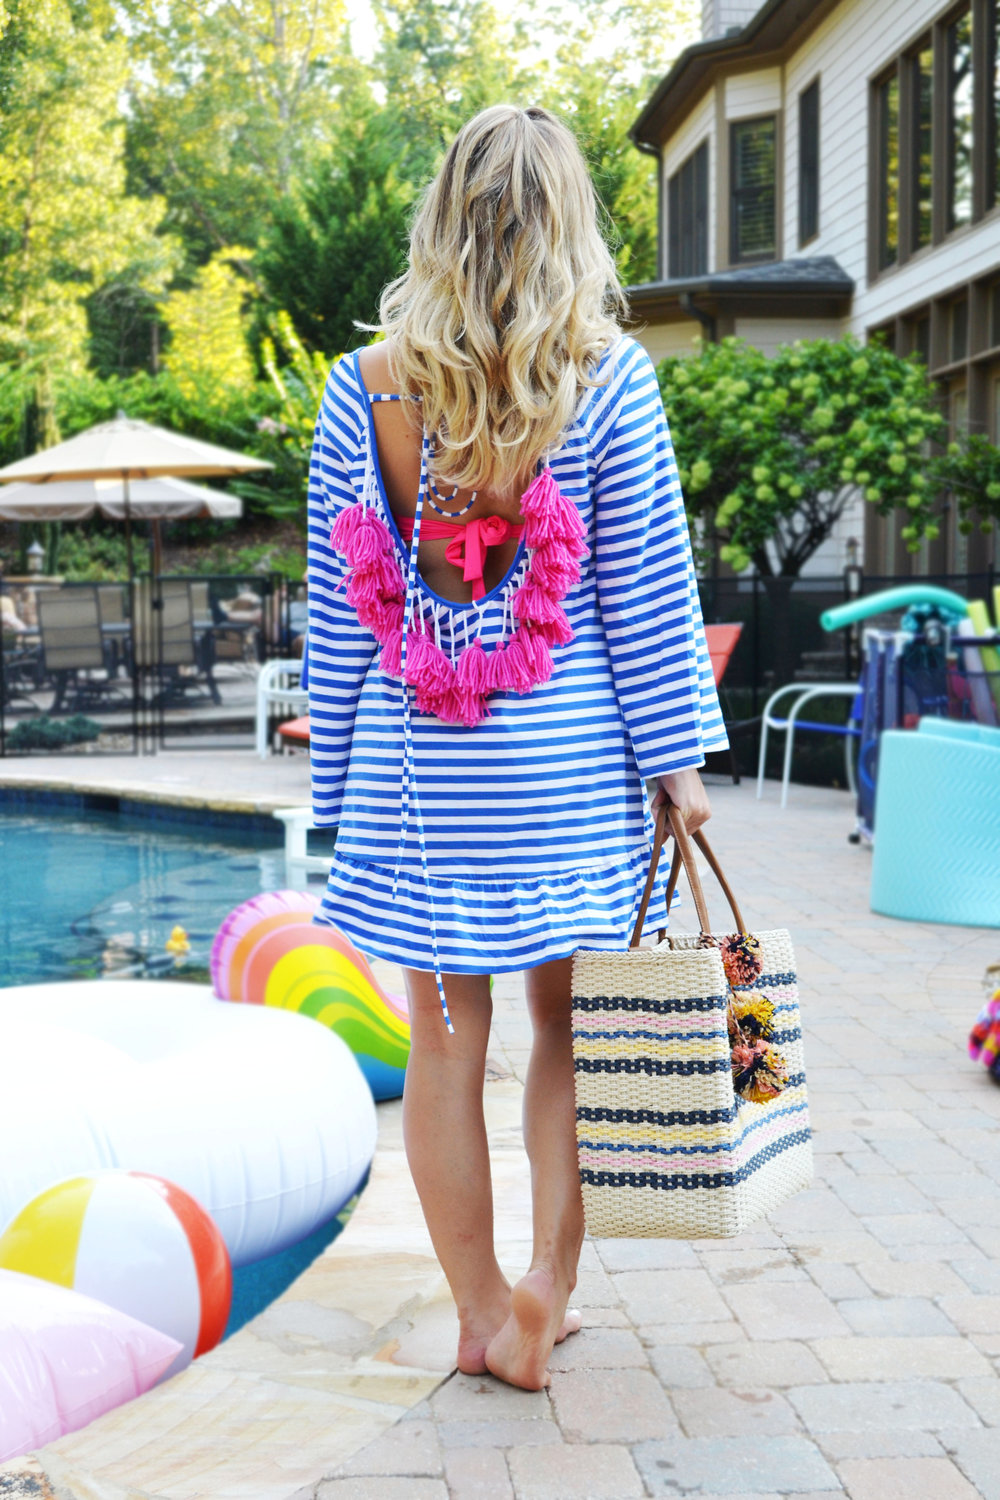 Featuring:   She In Tassel Shift Dress   //    Dillards Pom Pom Tote- Shop Similar    //   Unicorn Pool Float